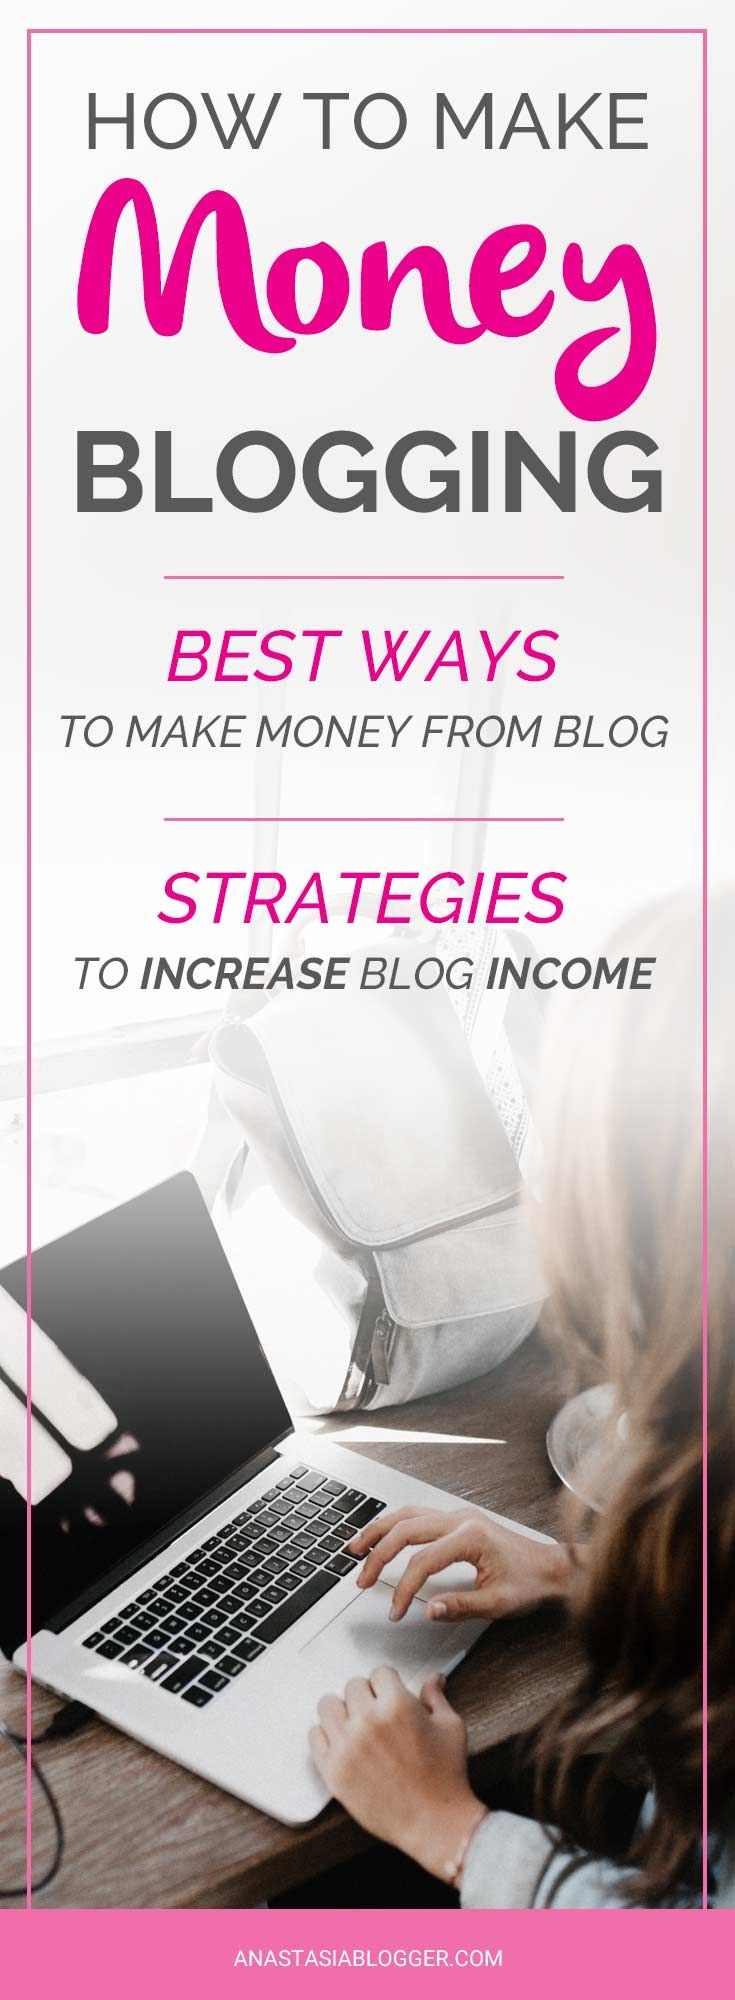 Are you starting a blog on Wordpress for free and wondering if it's possible to make money blogging? Well, here is your guide how to blog for extra money or as the main income source. Find here business ideas for beginners in blogging and be ready for monetization when creating a blog! #makemoneyonline #makemoney #workfromhome